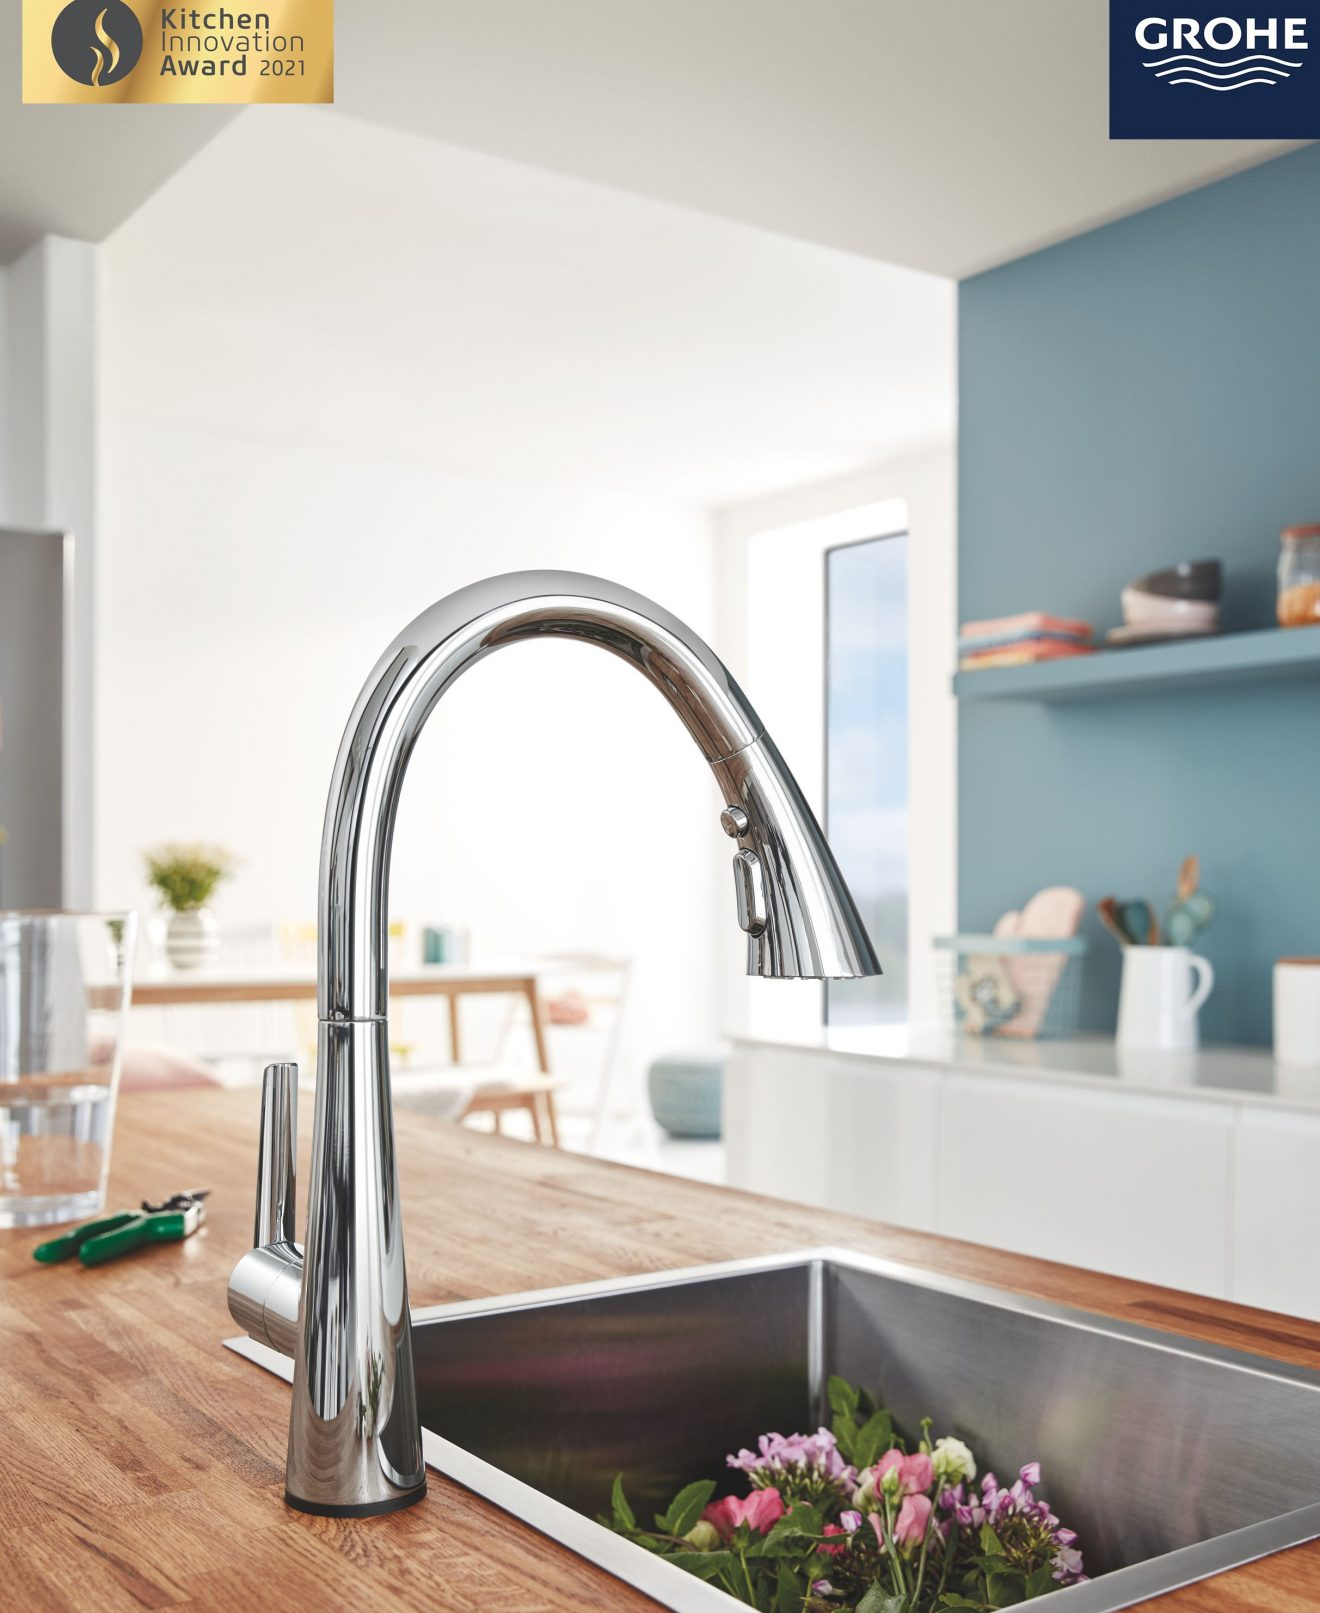 Zedra Kitchen Faucet by GROHE Wins the Kitchen Innovation Award 2021